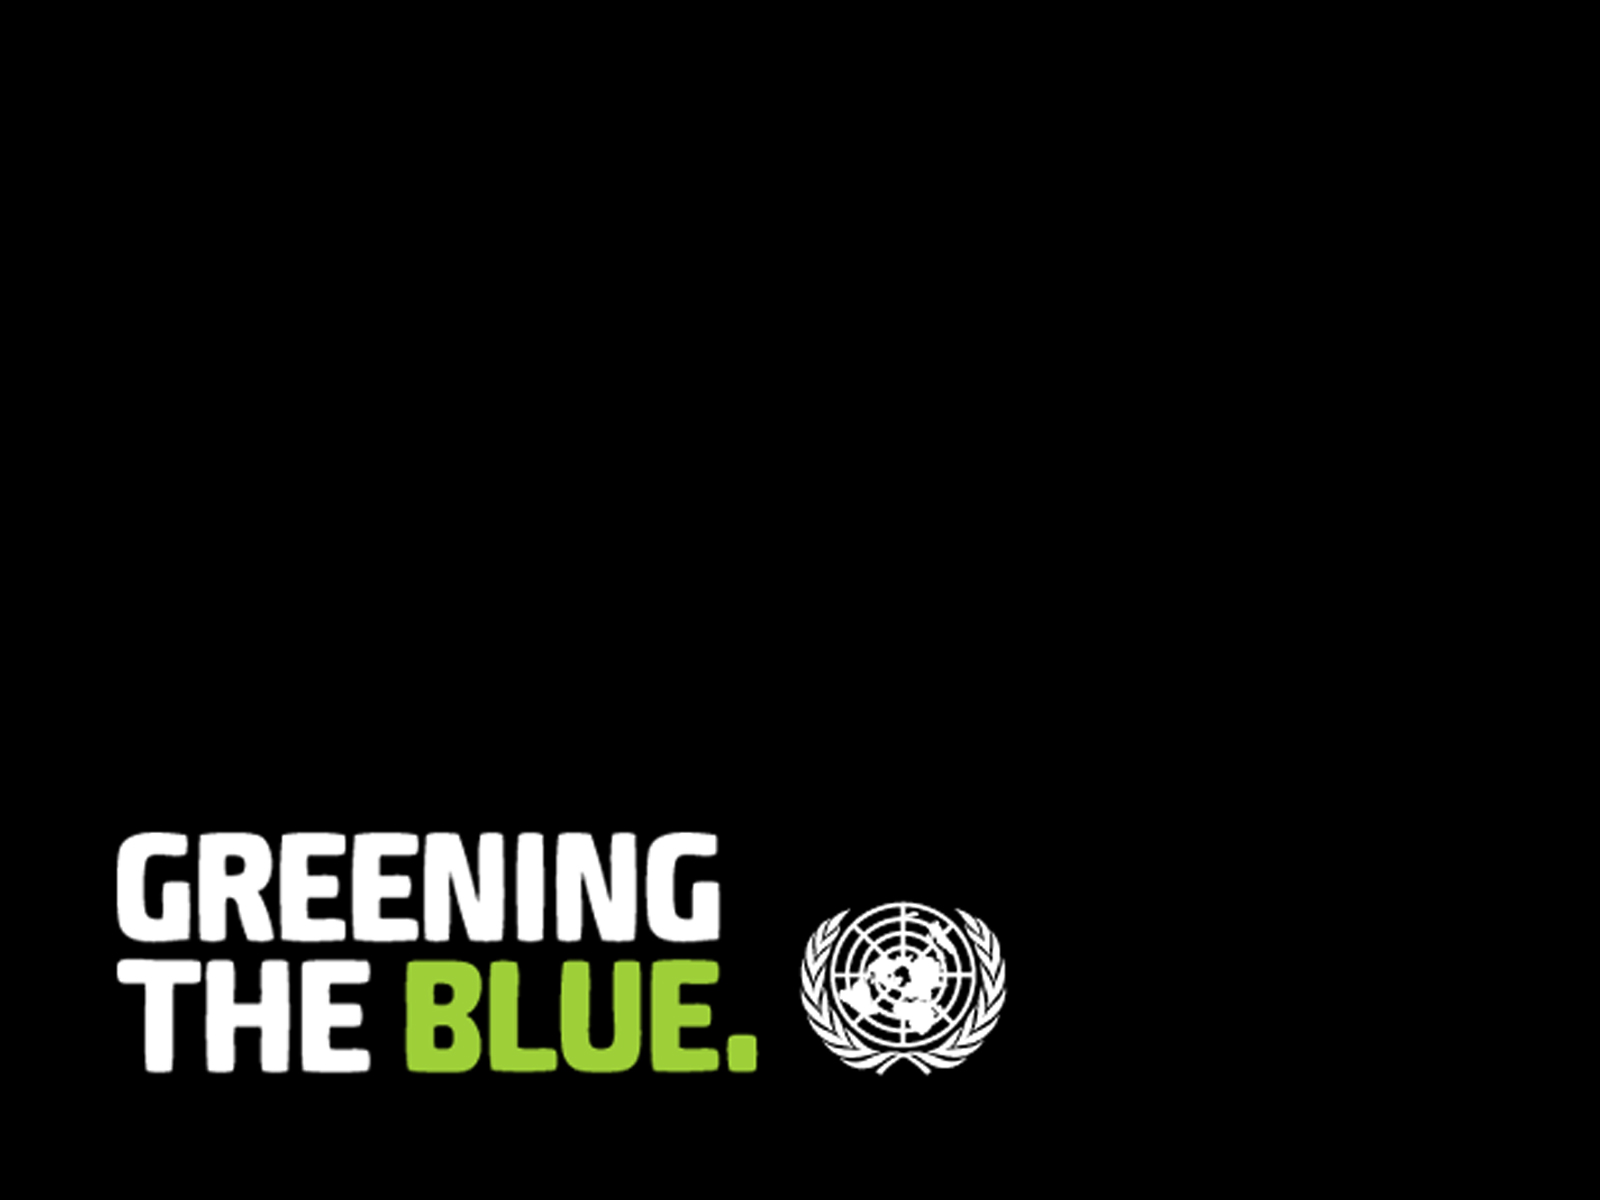 Greening the Blue Computer Wallpapers 1600 x 1200 - Simple black